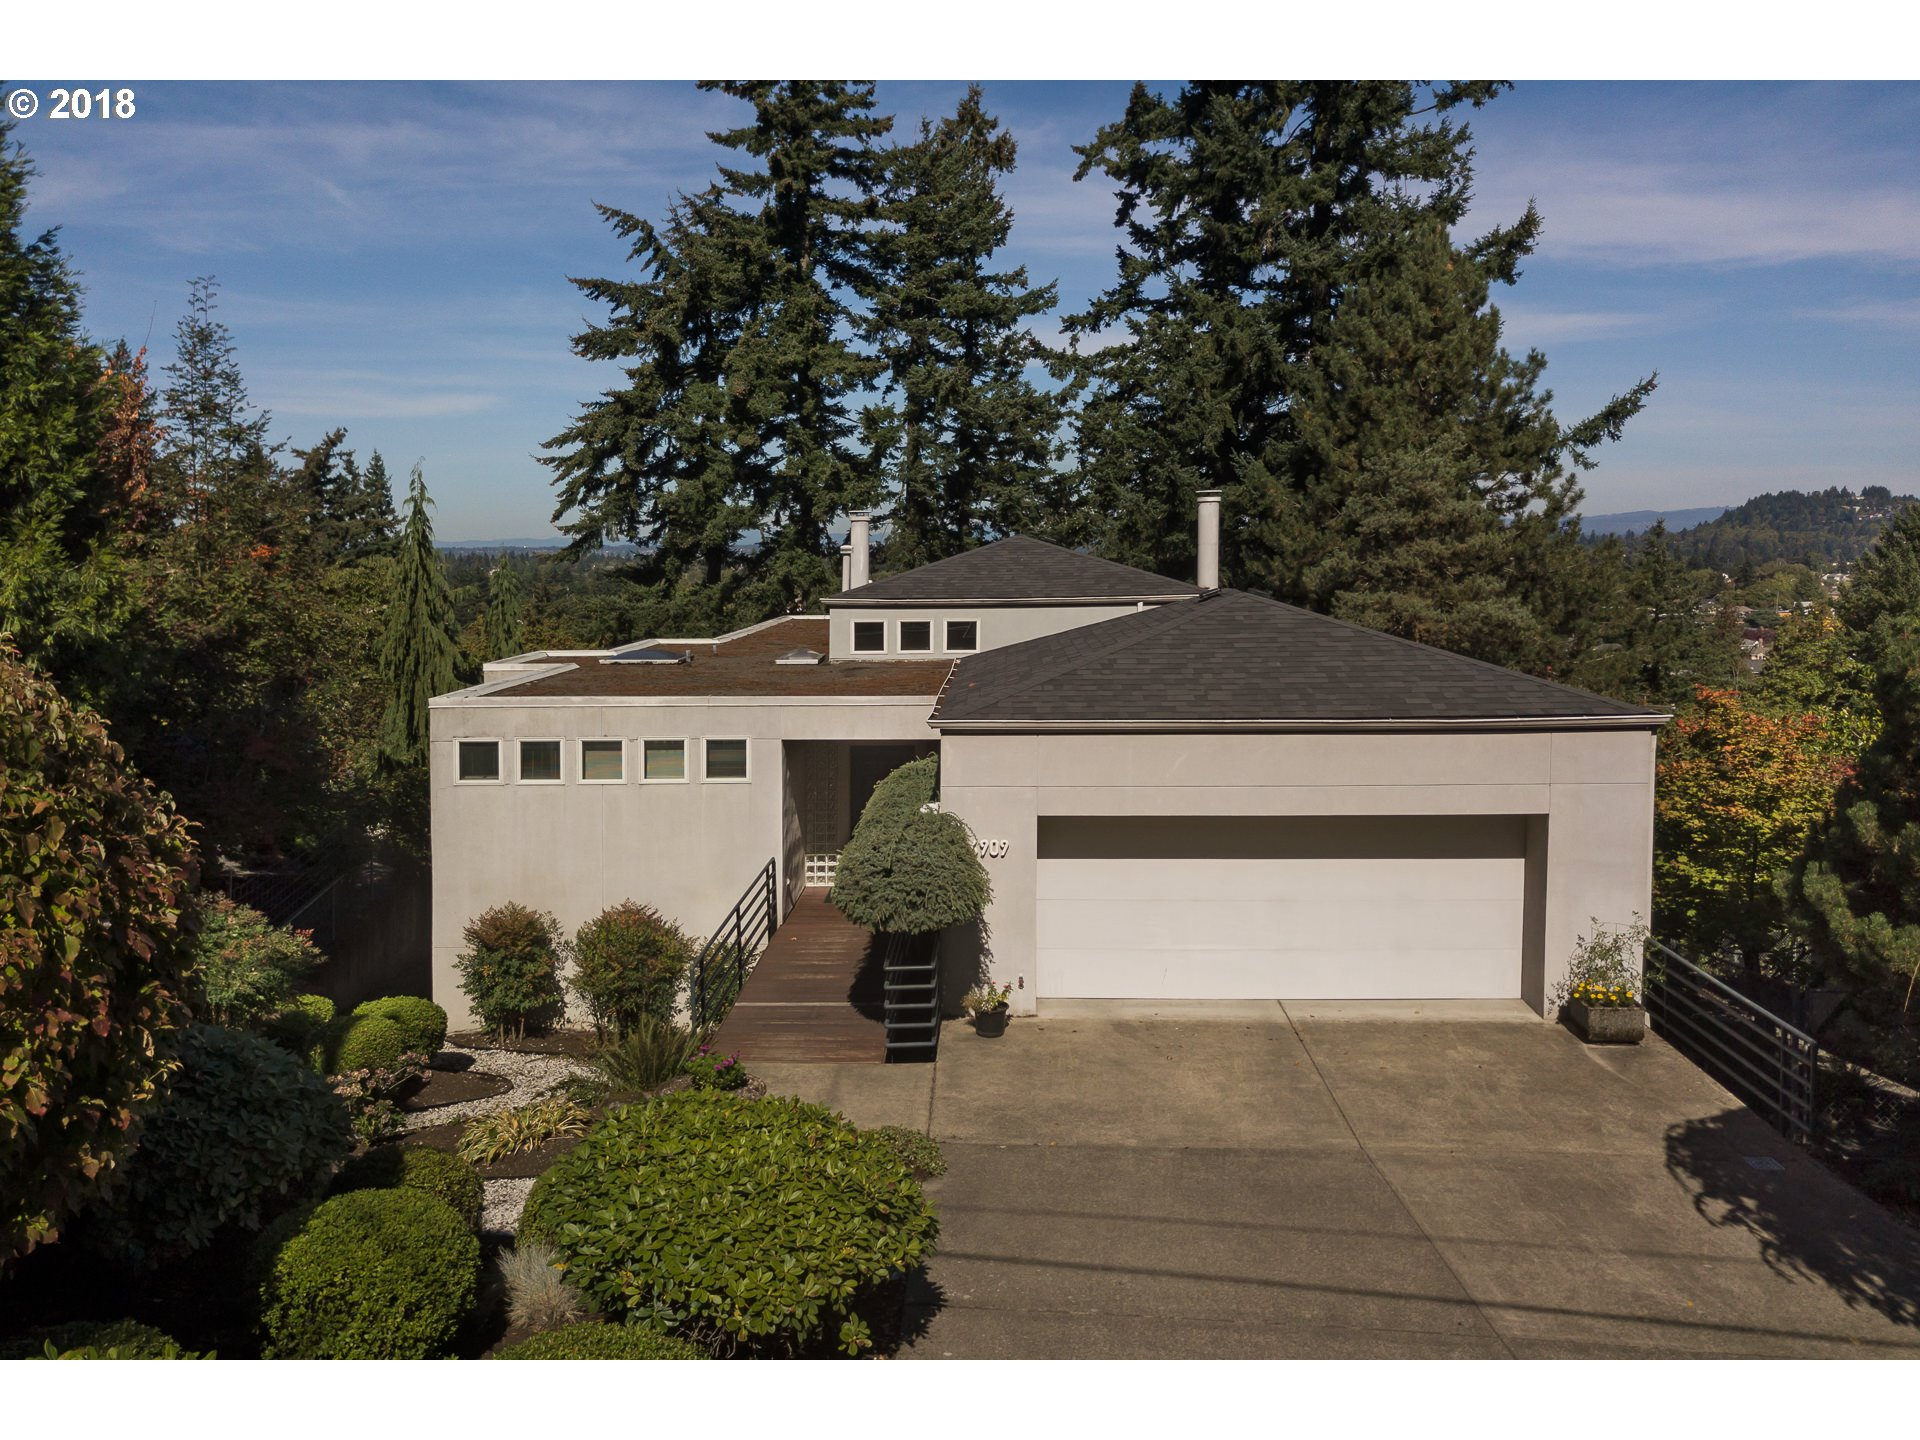 1849 sq. ft 3 bedrooms 2 bathrooms  House For Sale, Portland, OR